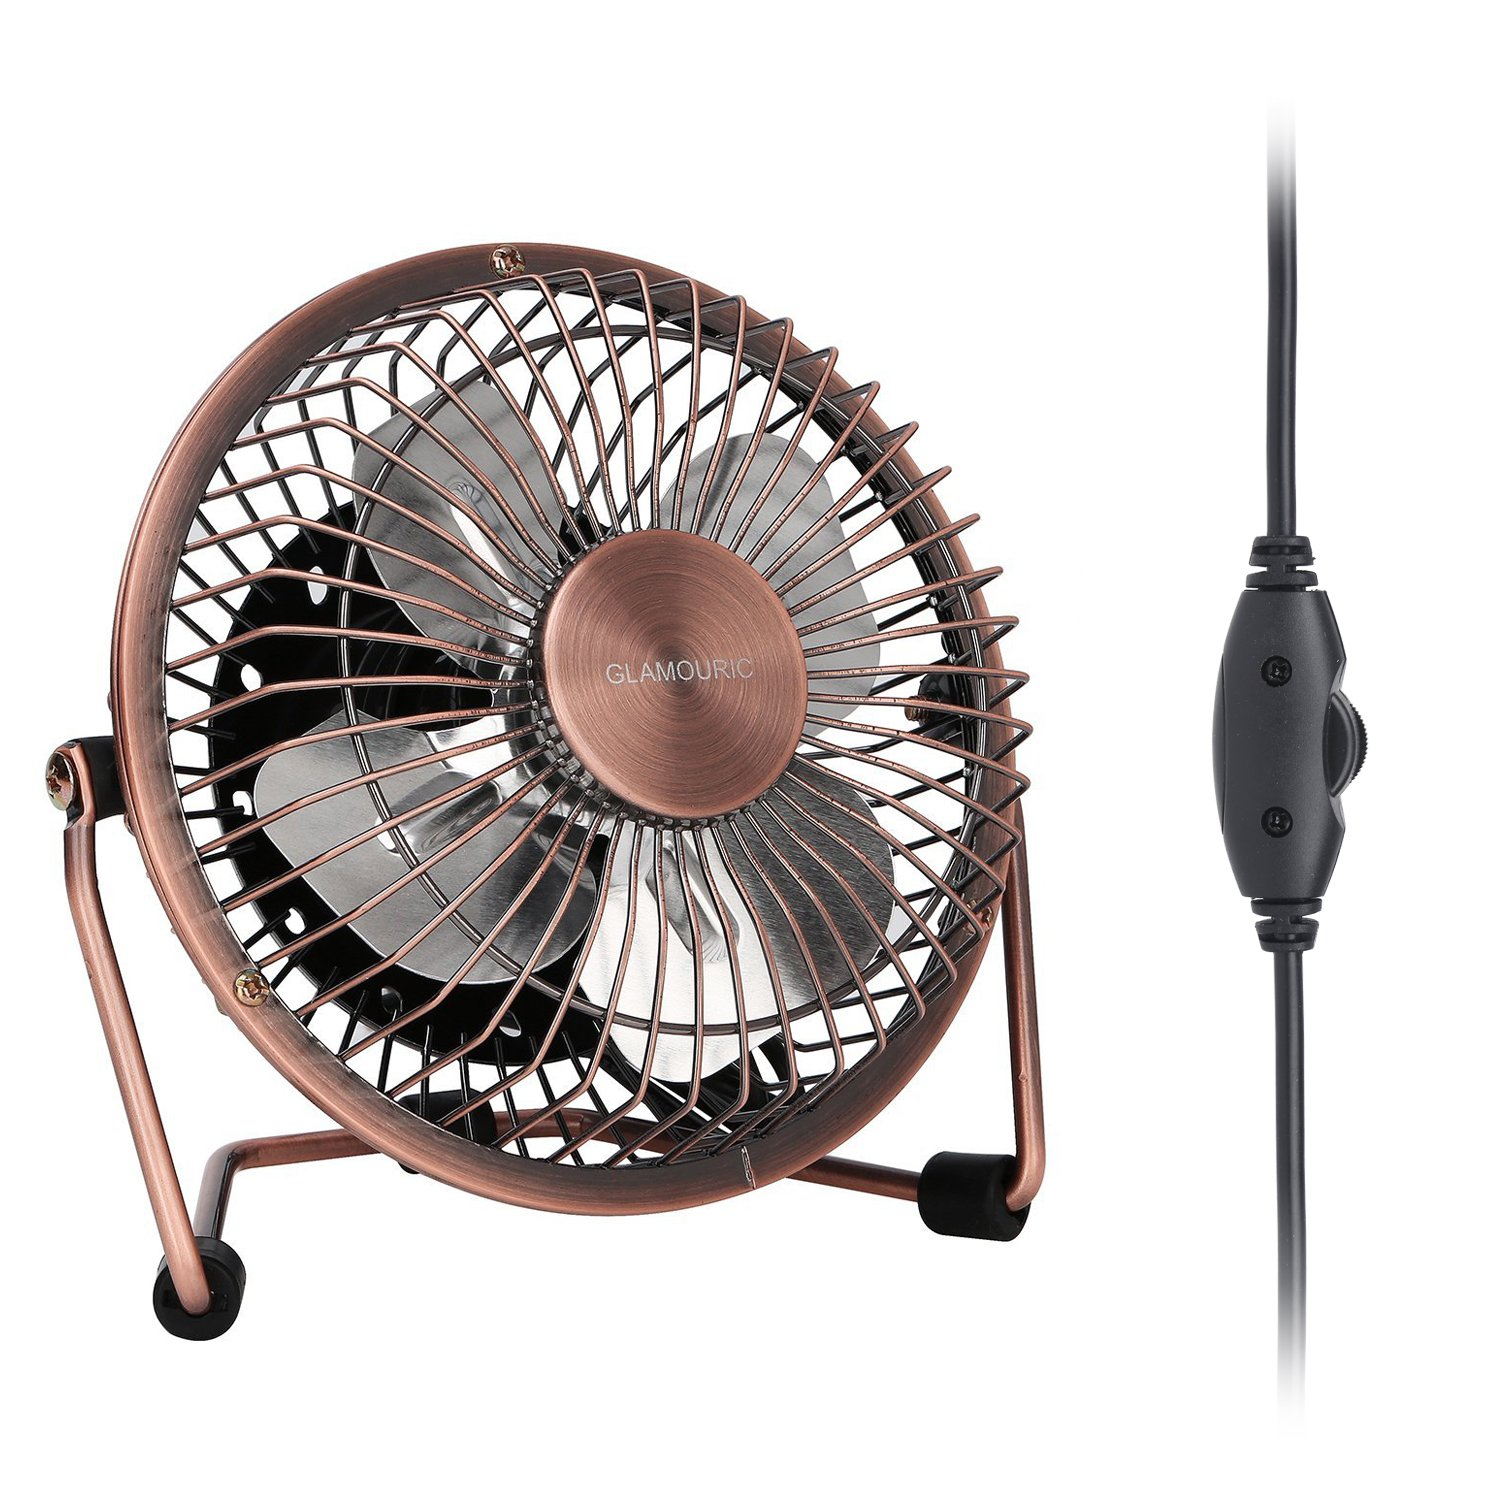 GLAMOURIC Small USB Desk Fan Mini Metal Personal Fan Retro Design Electric Portable Air Circulator Angle Adjustable Quiet Operation for Table Desktop Home Office Travel (Copper) COMINHKPR113259